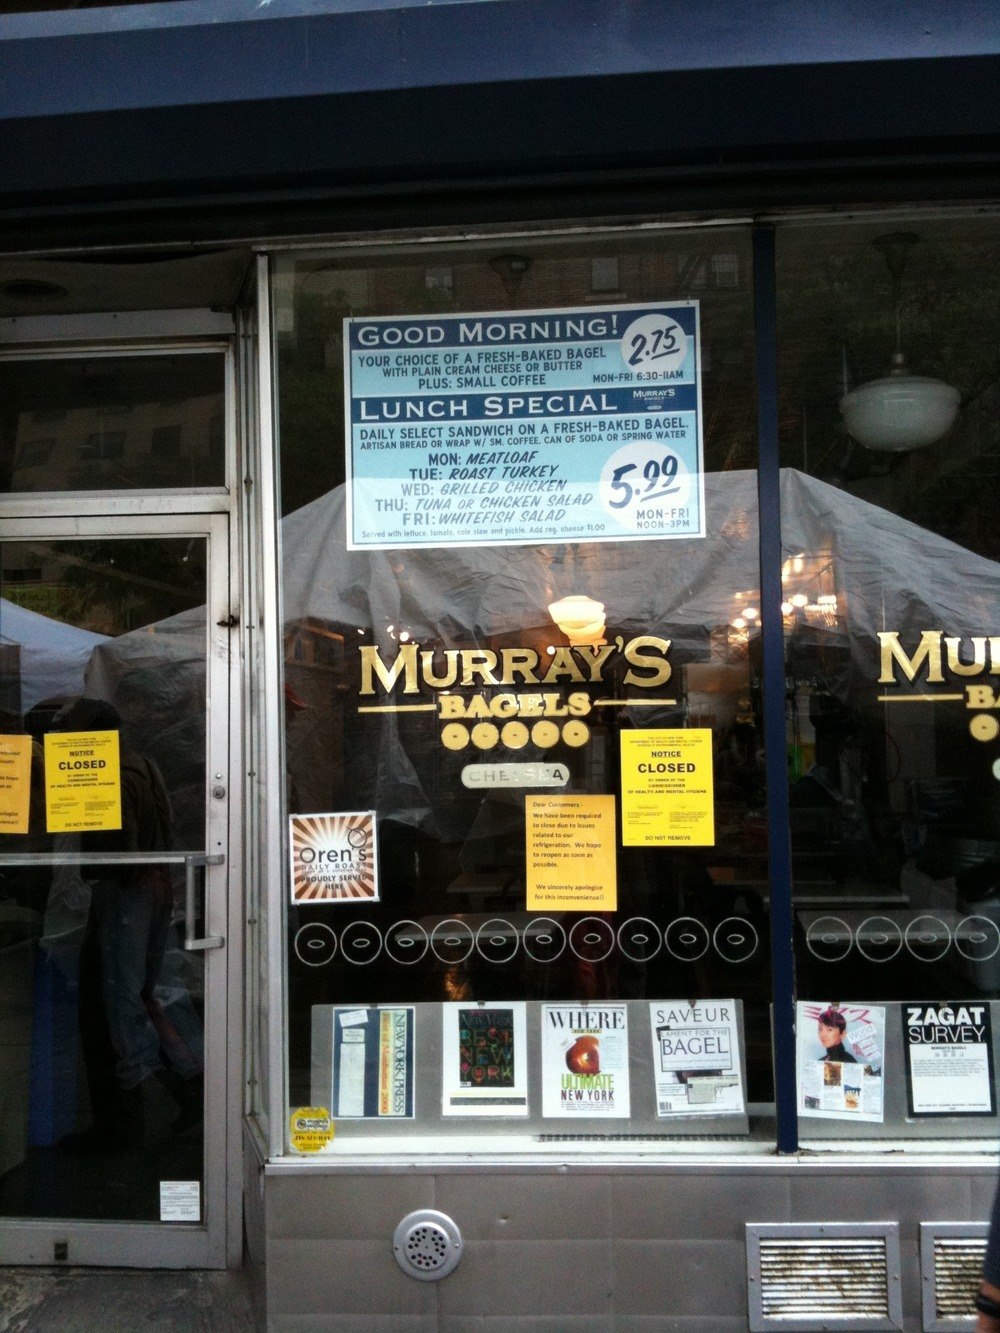 Murray's Bagels closed by NYC Health Dept